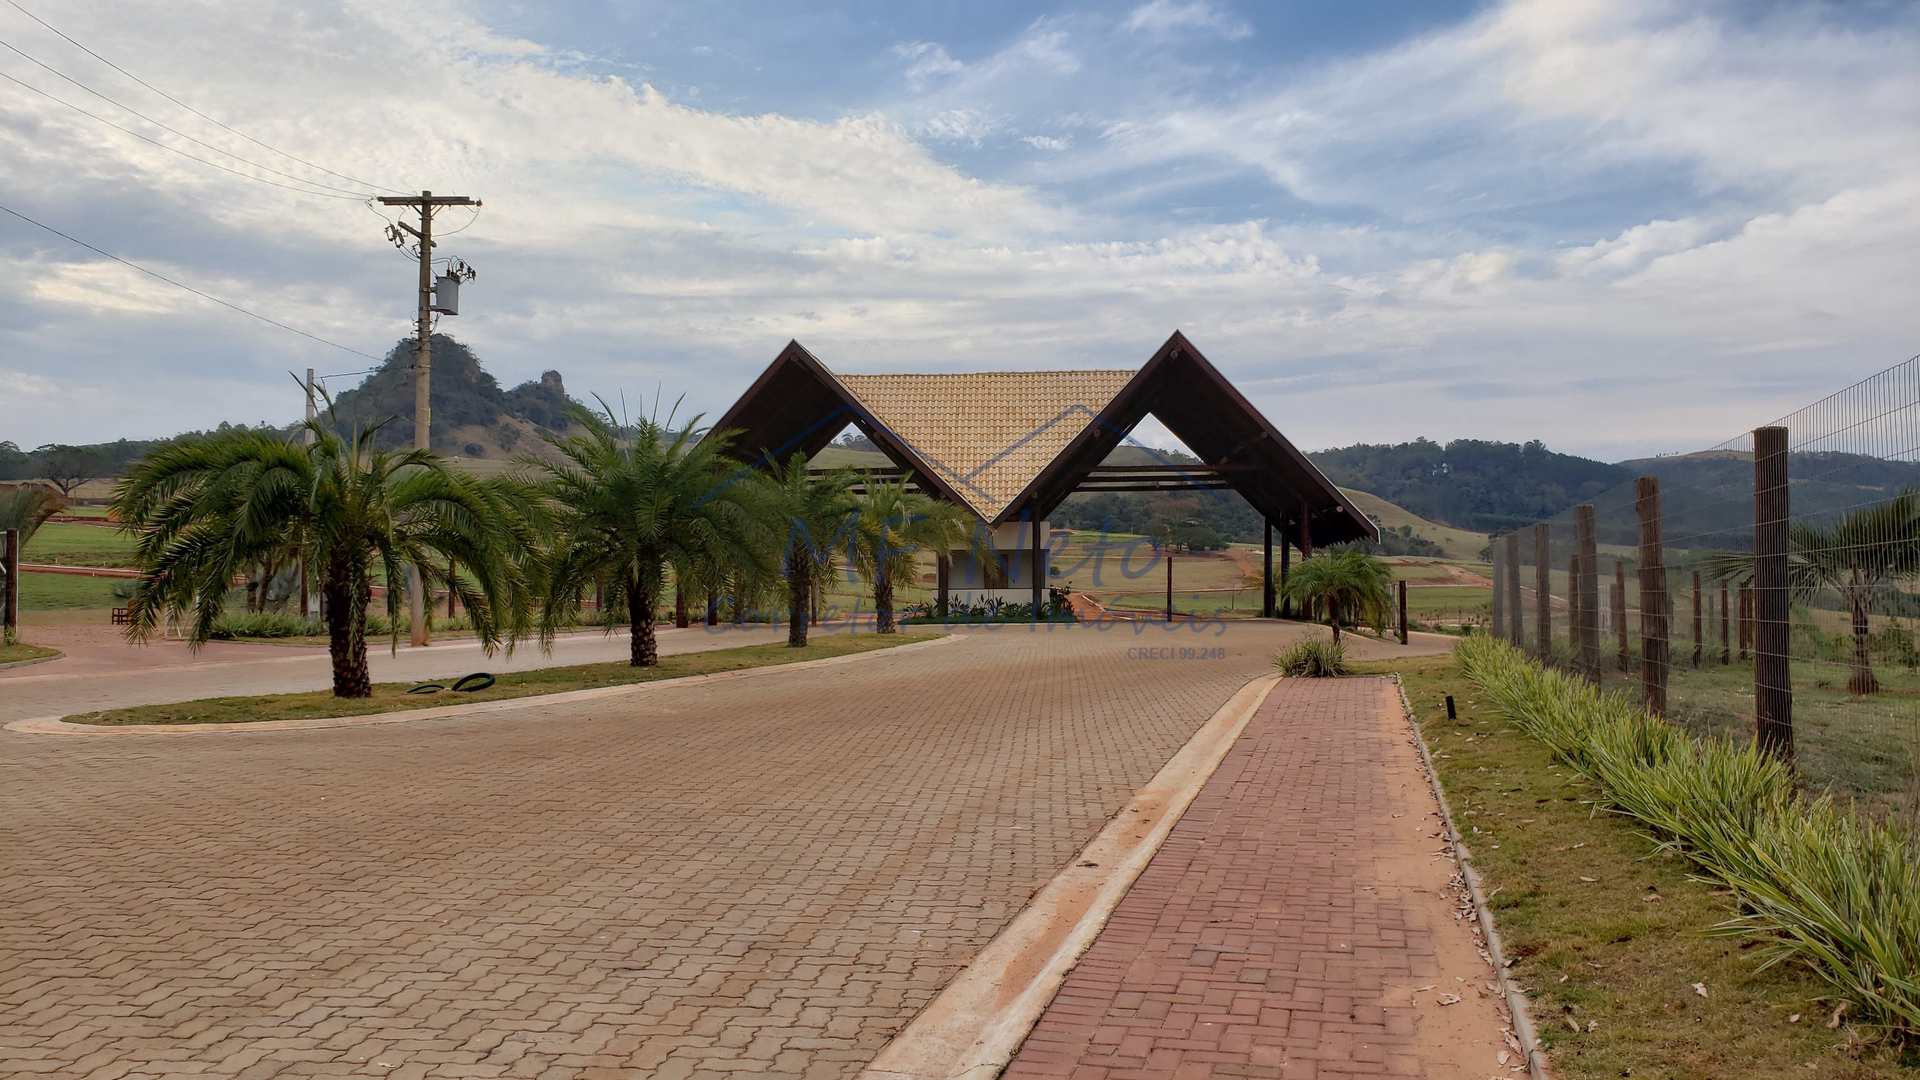 RESIDENCIAL CUSCOVILLE - Analândia (SP)